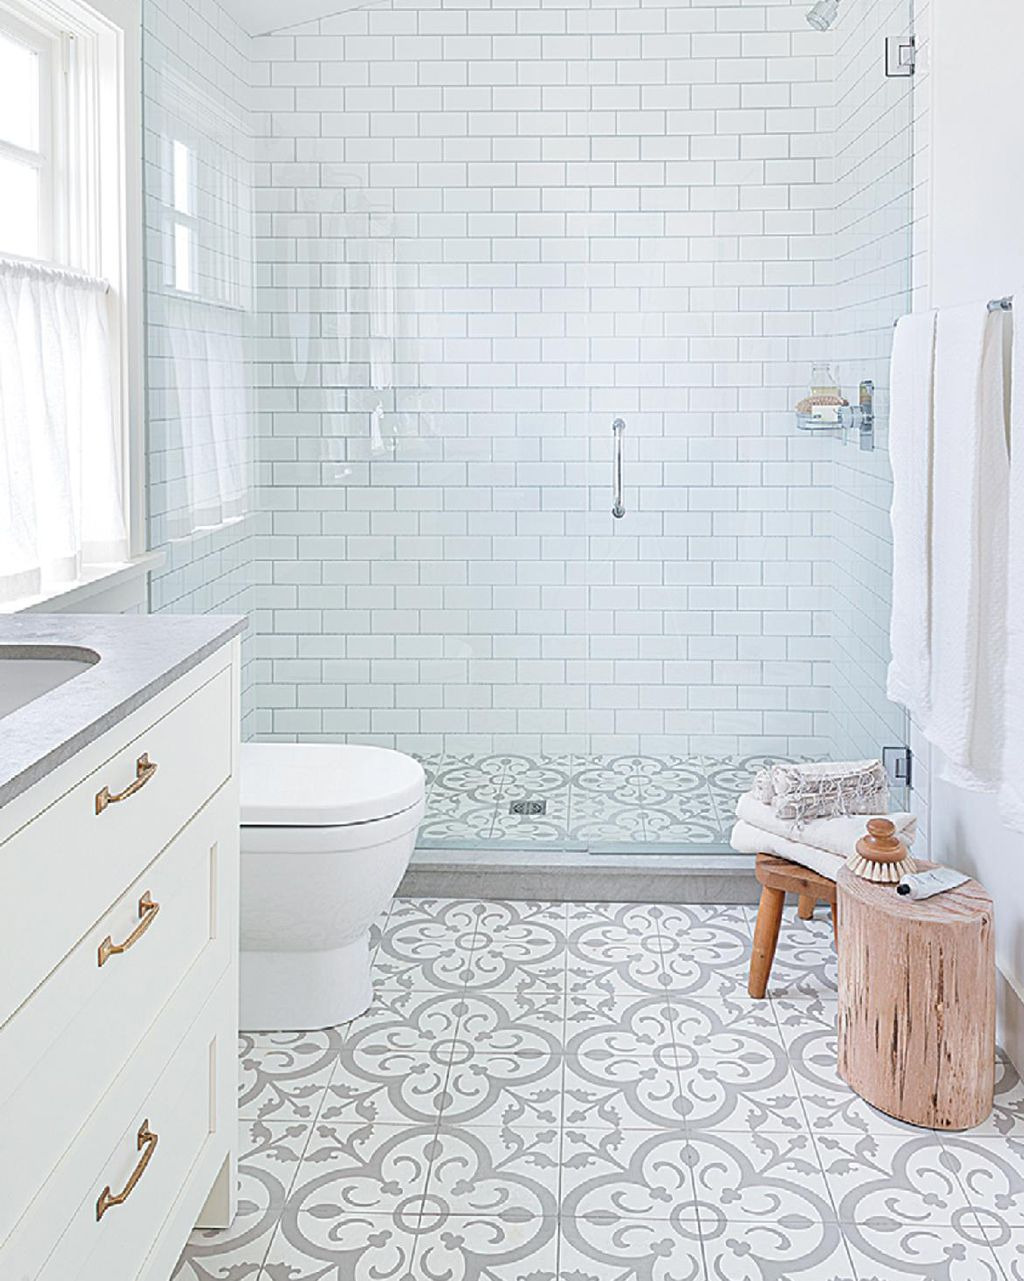 Decorative Tiles for Bathroom Awesome All About Patterned Tile Flooring by